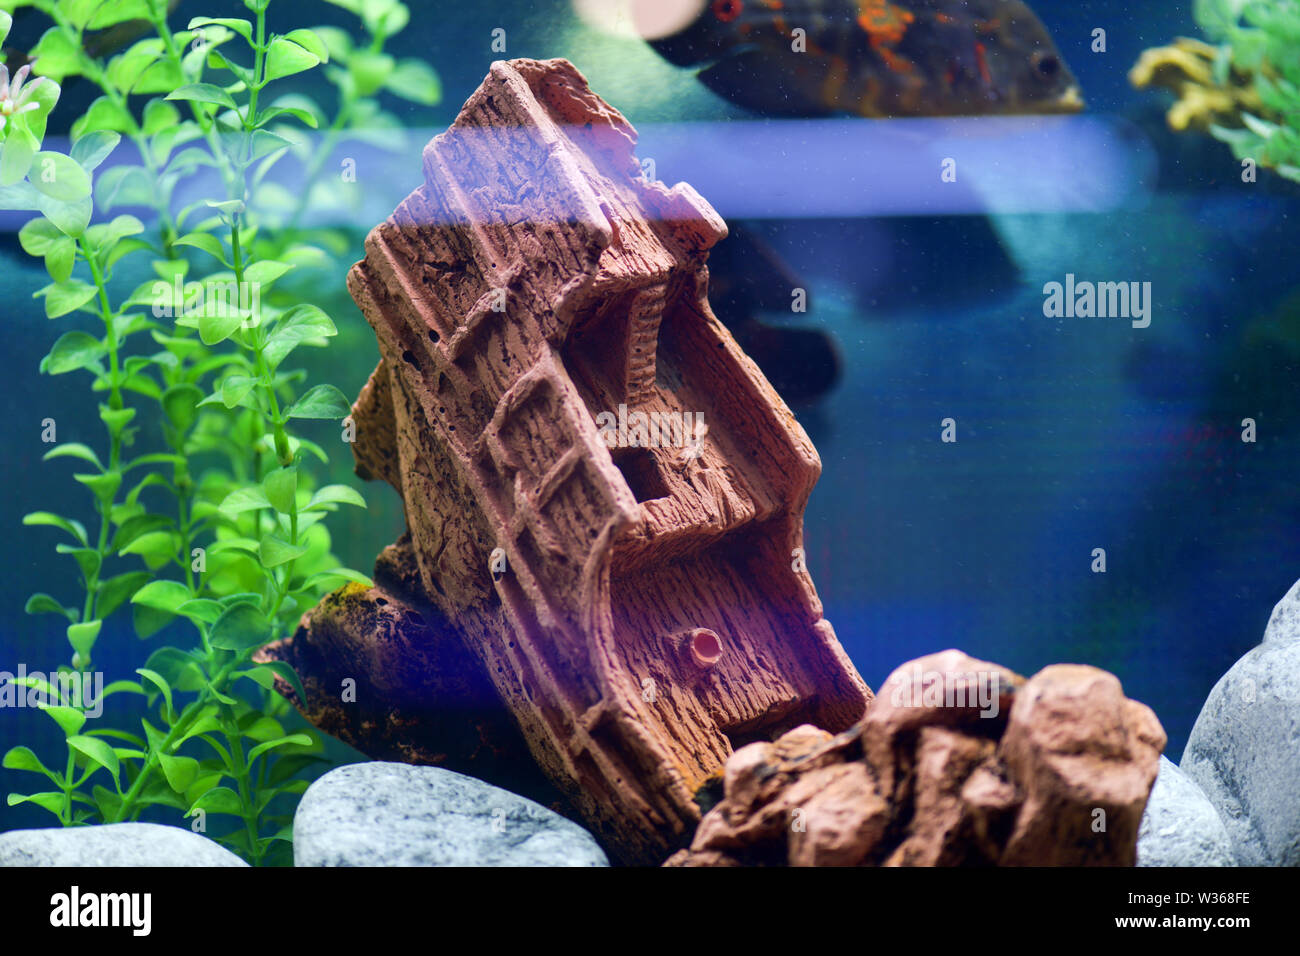 Beautiful and creative design of the aquarium-sunk ship on a blue background. Horizontal photography - Stock Image